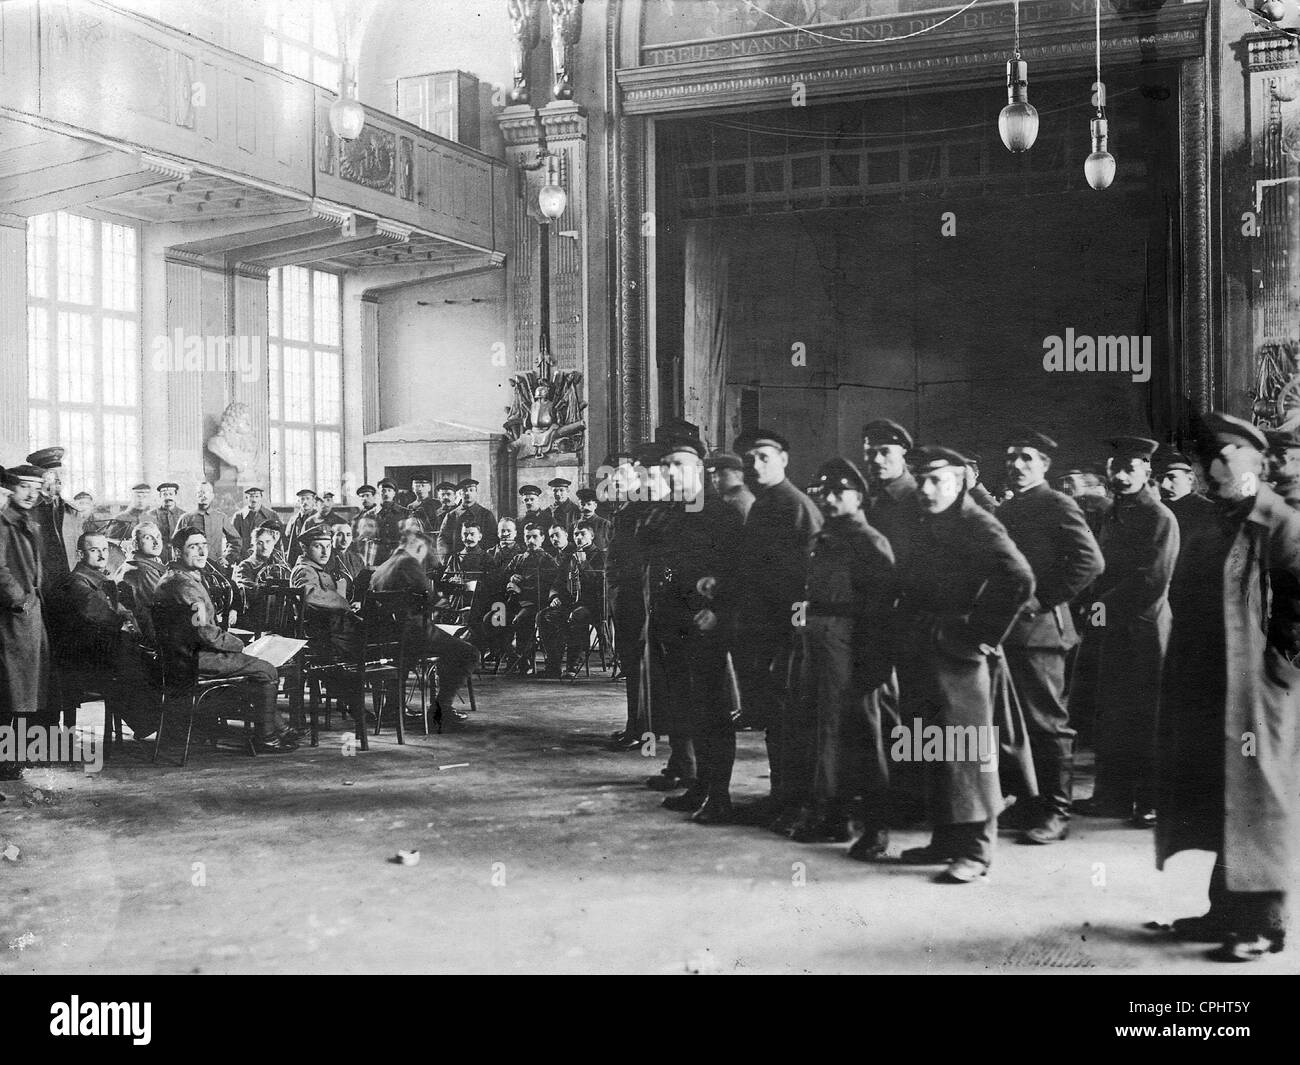 Rebelling sailors in the stables in Berlin, 1918 - Stock Image